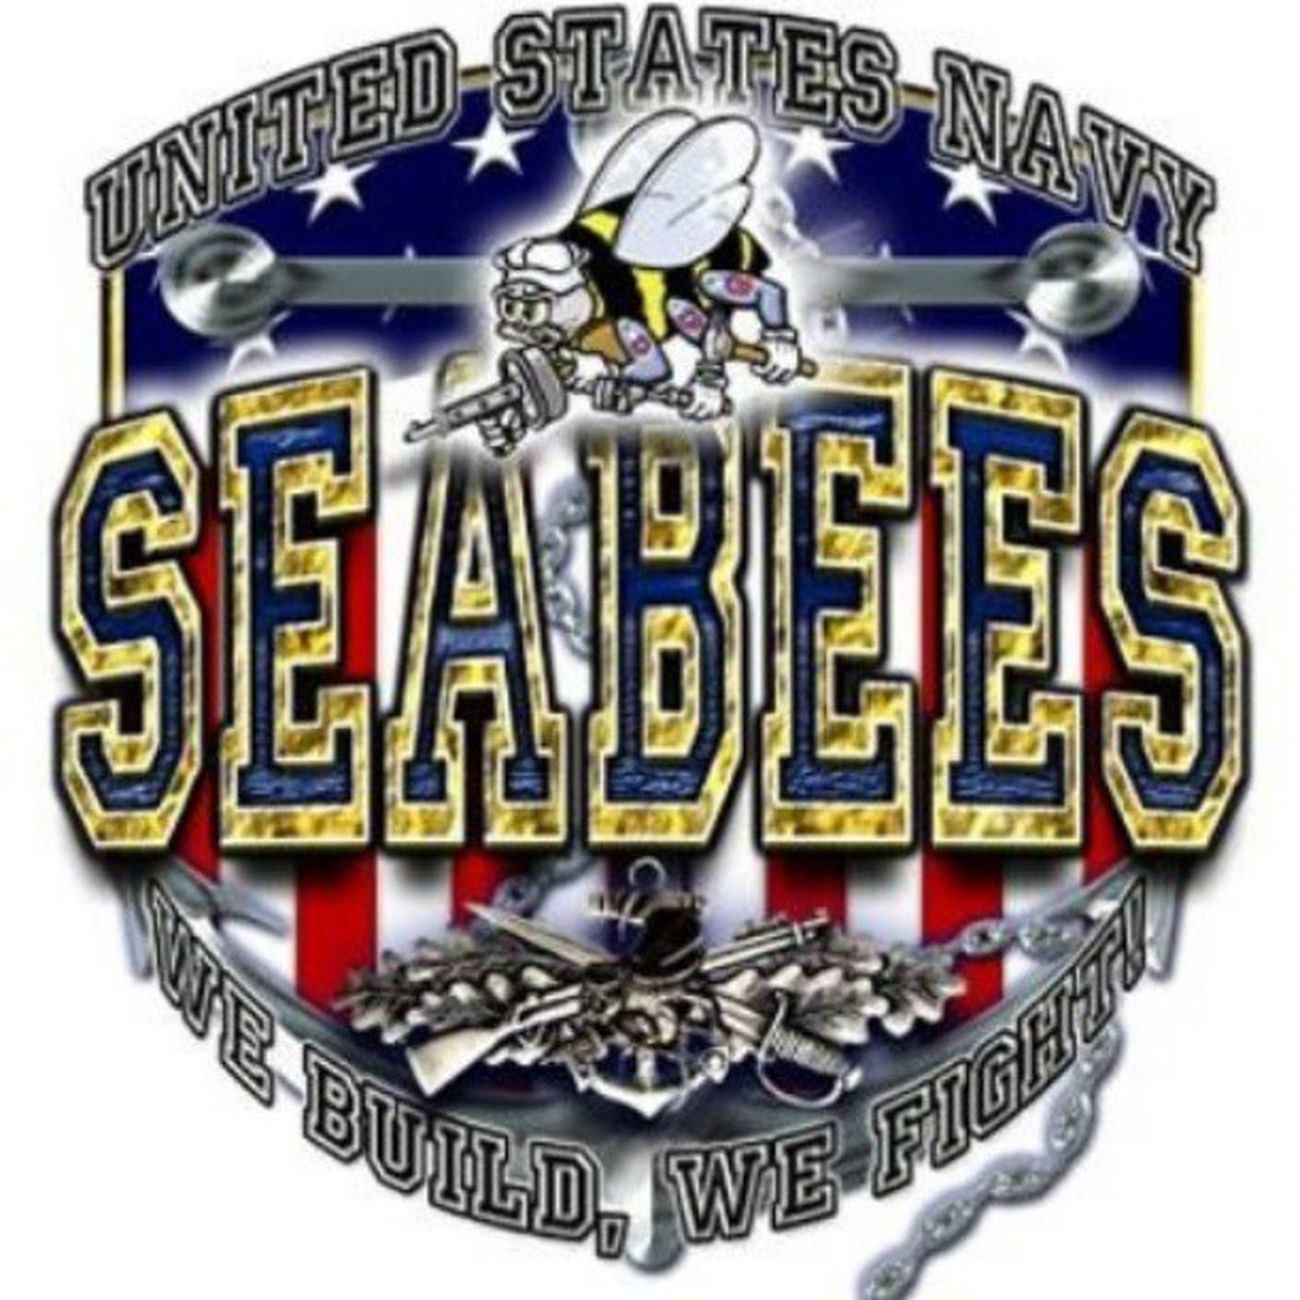 Glad to have served and be a Bee for 20yrs. Hoorahhhh! Usnavy Seabees Nmcbpickanumber .